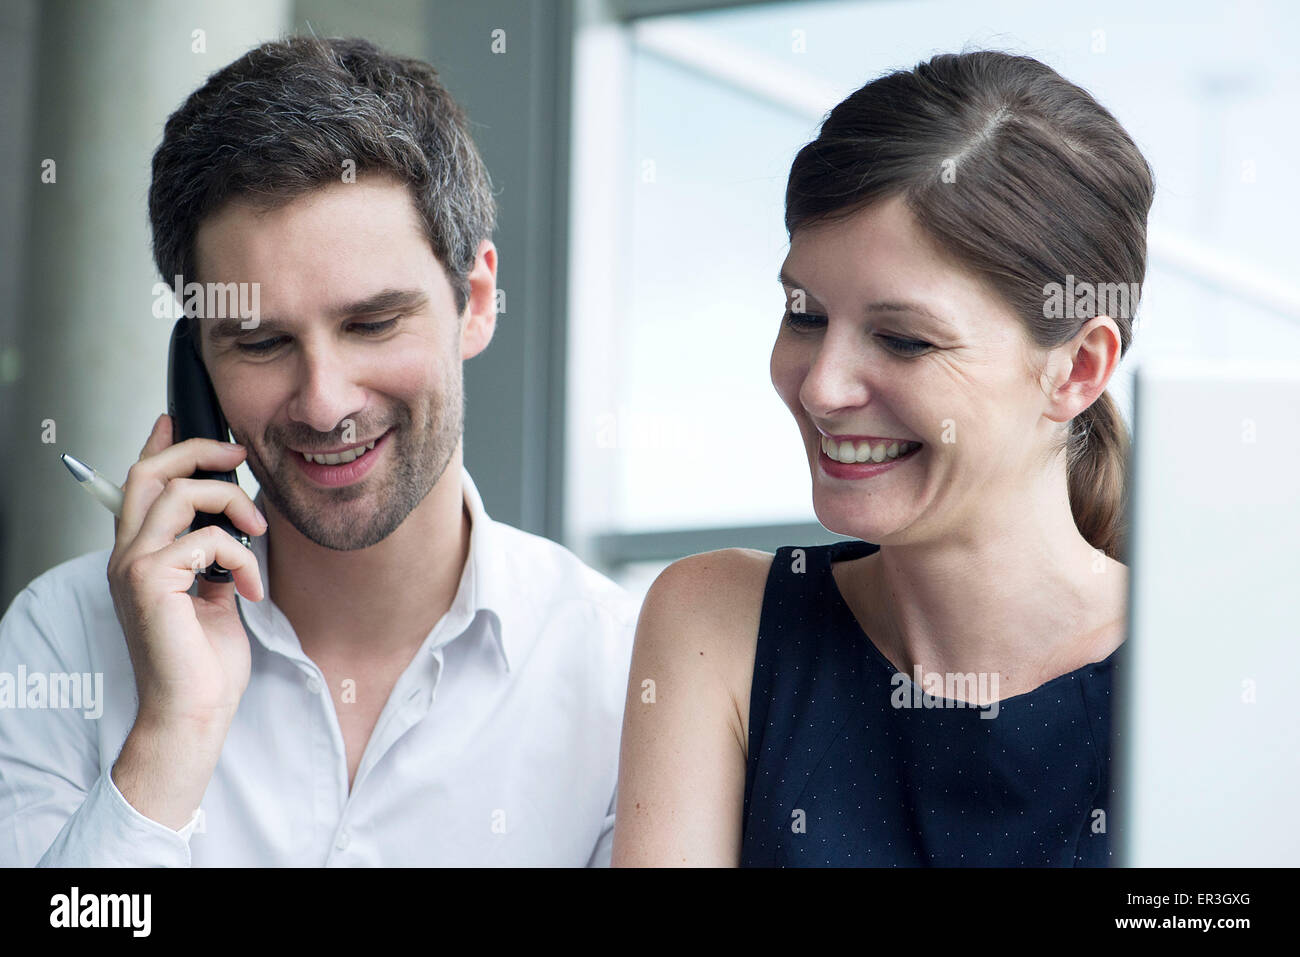 Business colleagues smiling together, man talking on cell phone - Stock Image